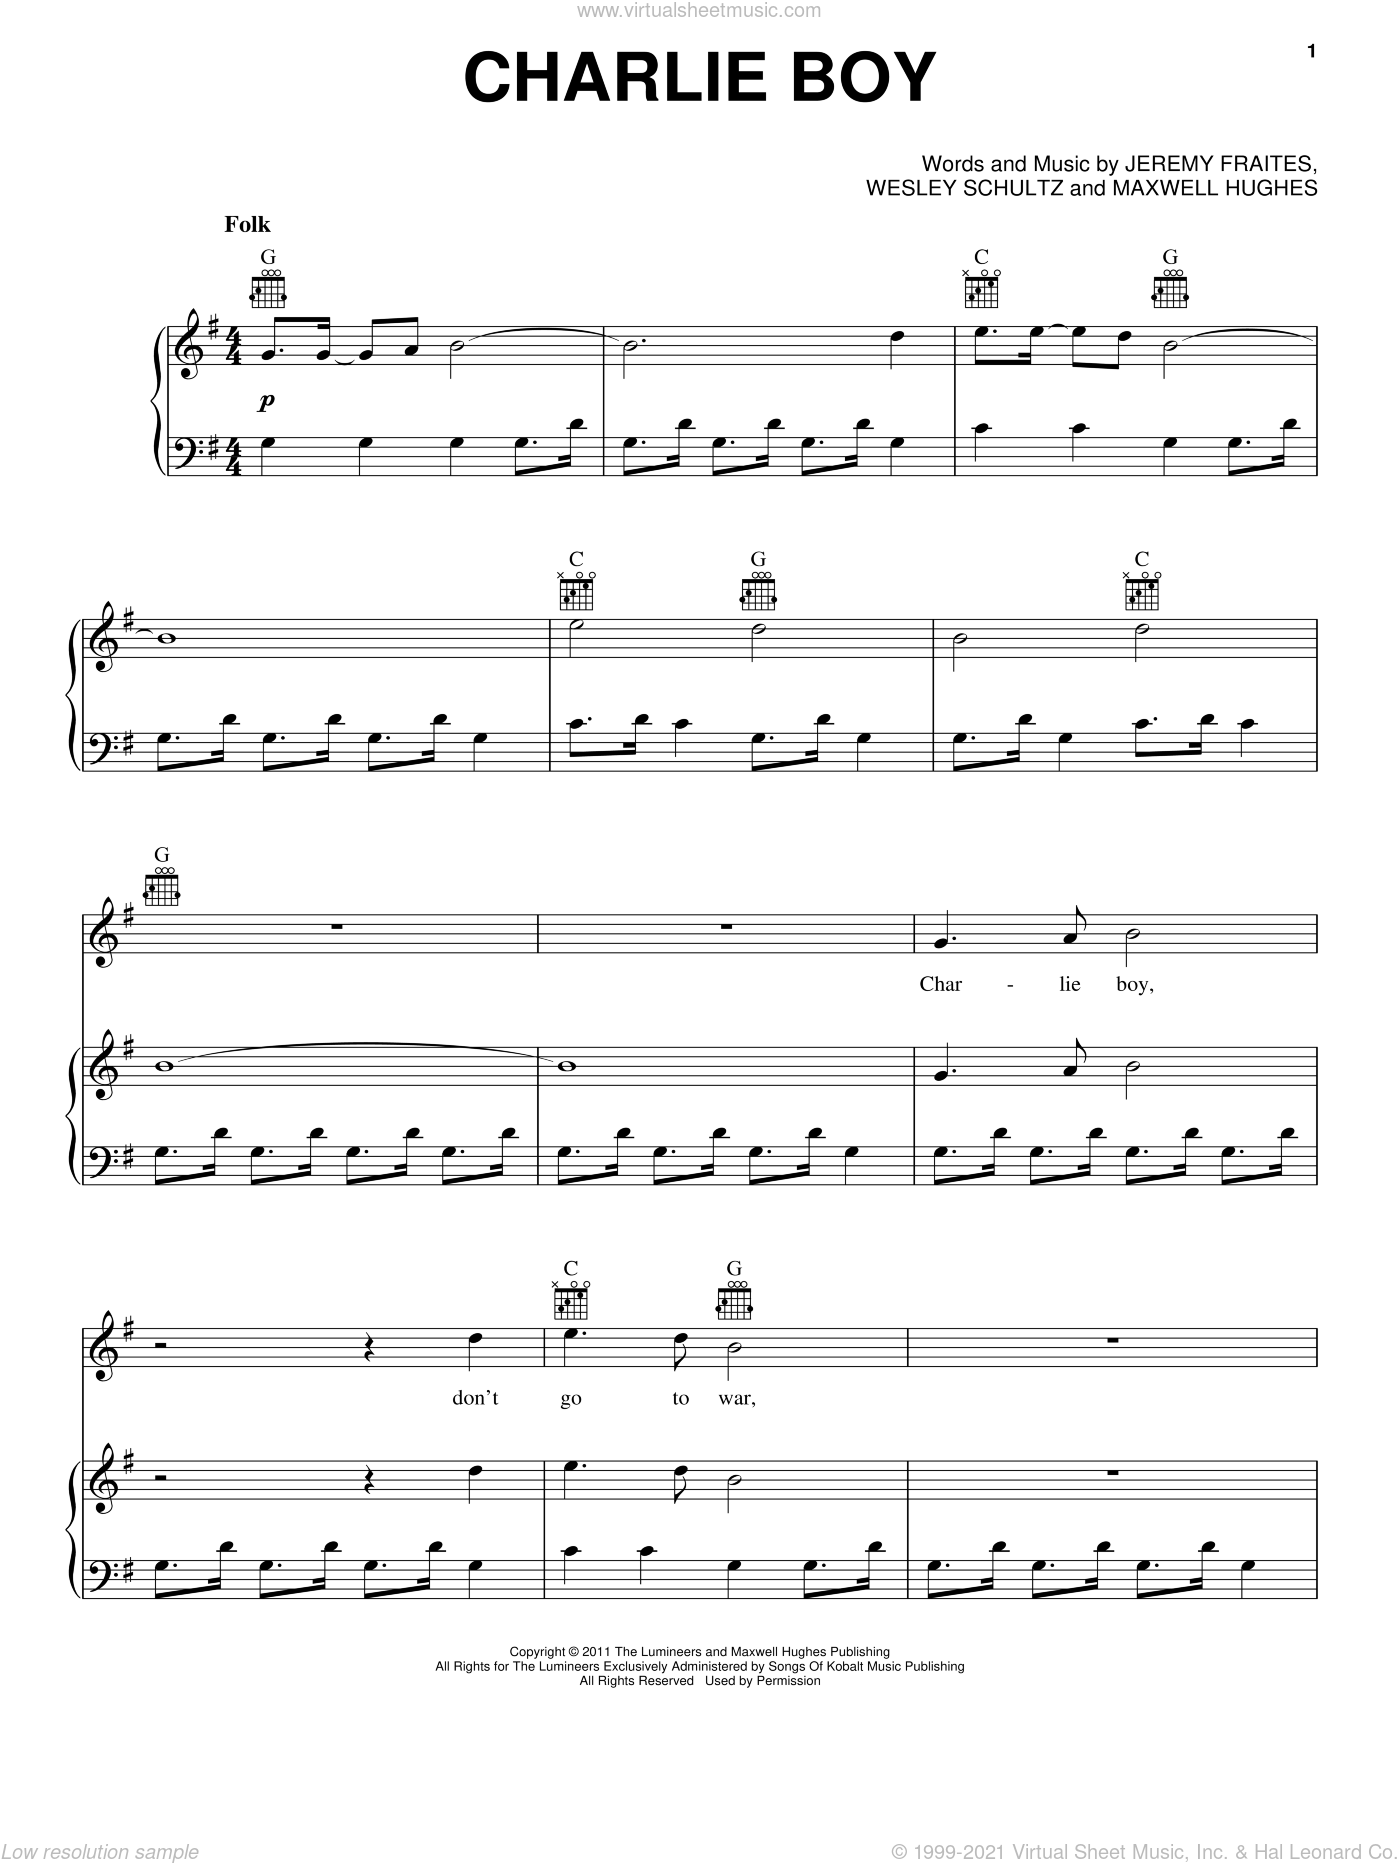 Charlie Boy sheet music for voice, piano or guitar by Wesley Schultz